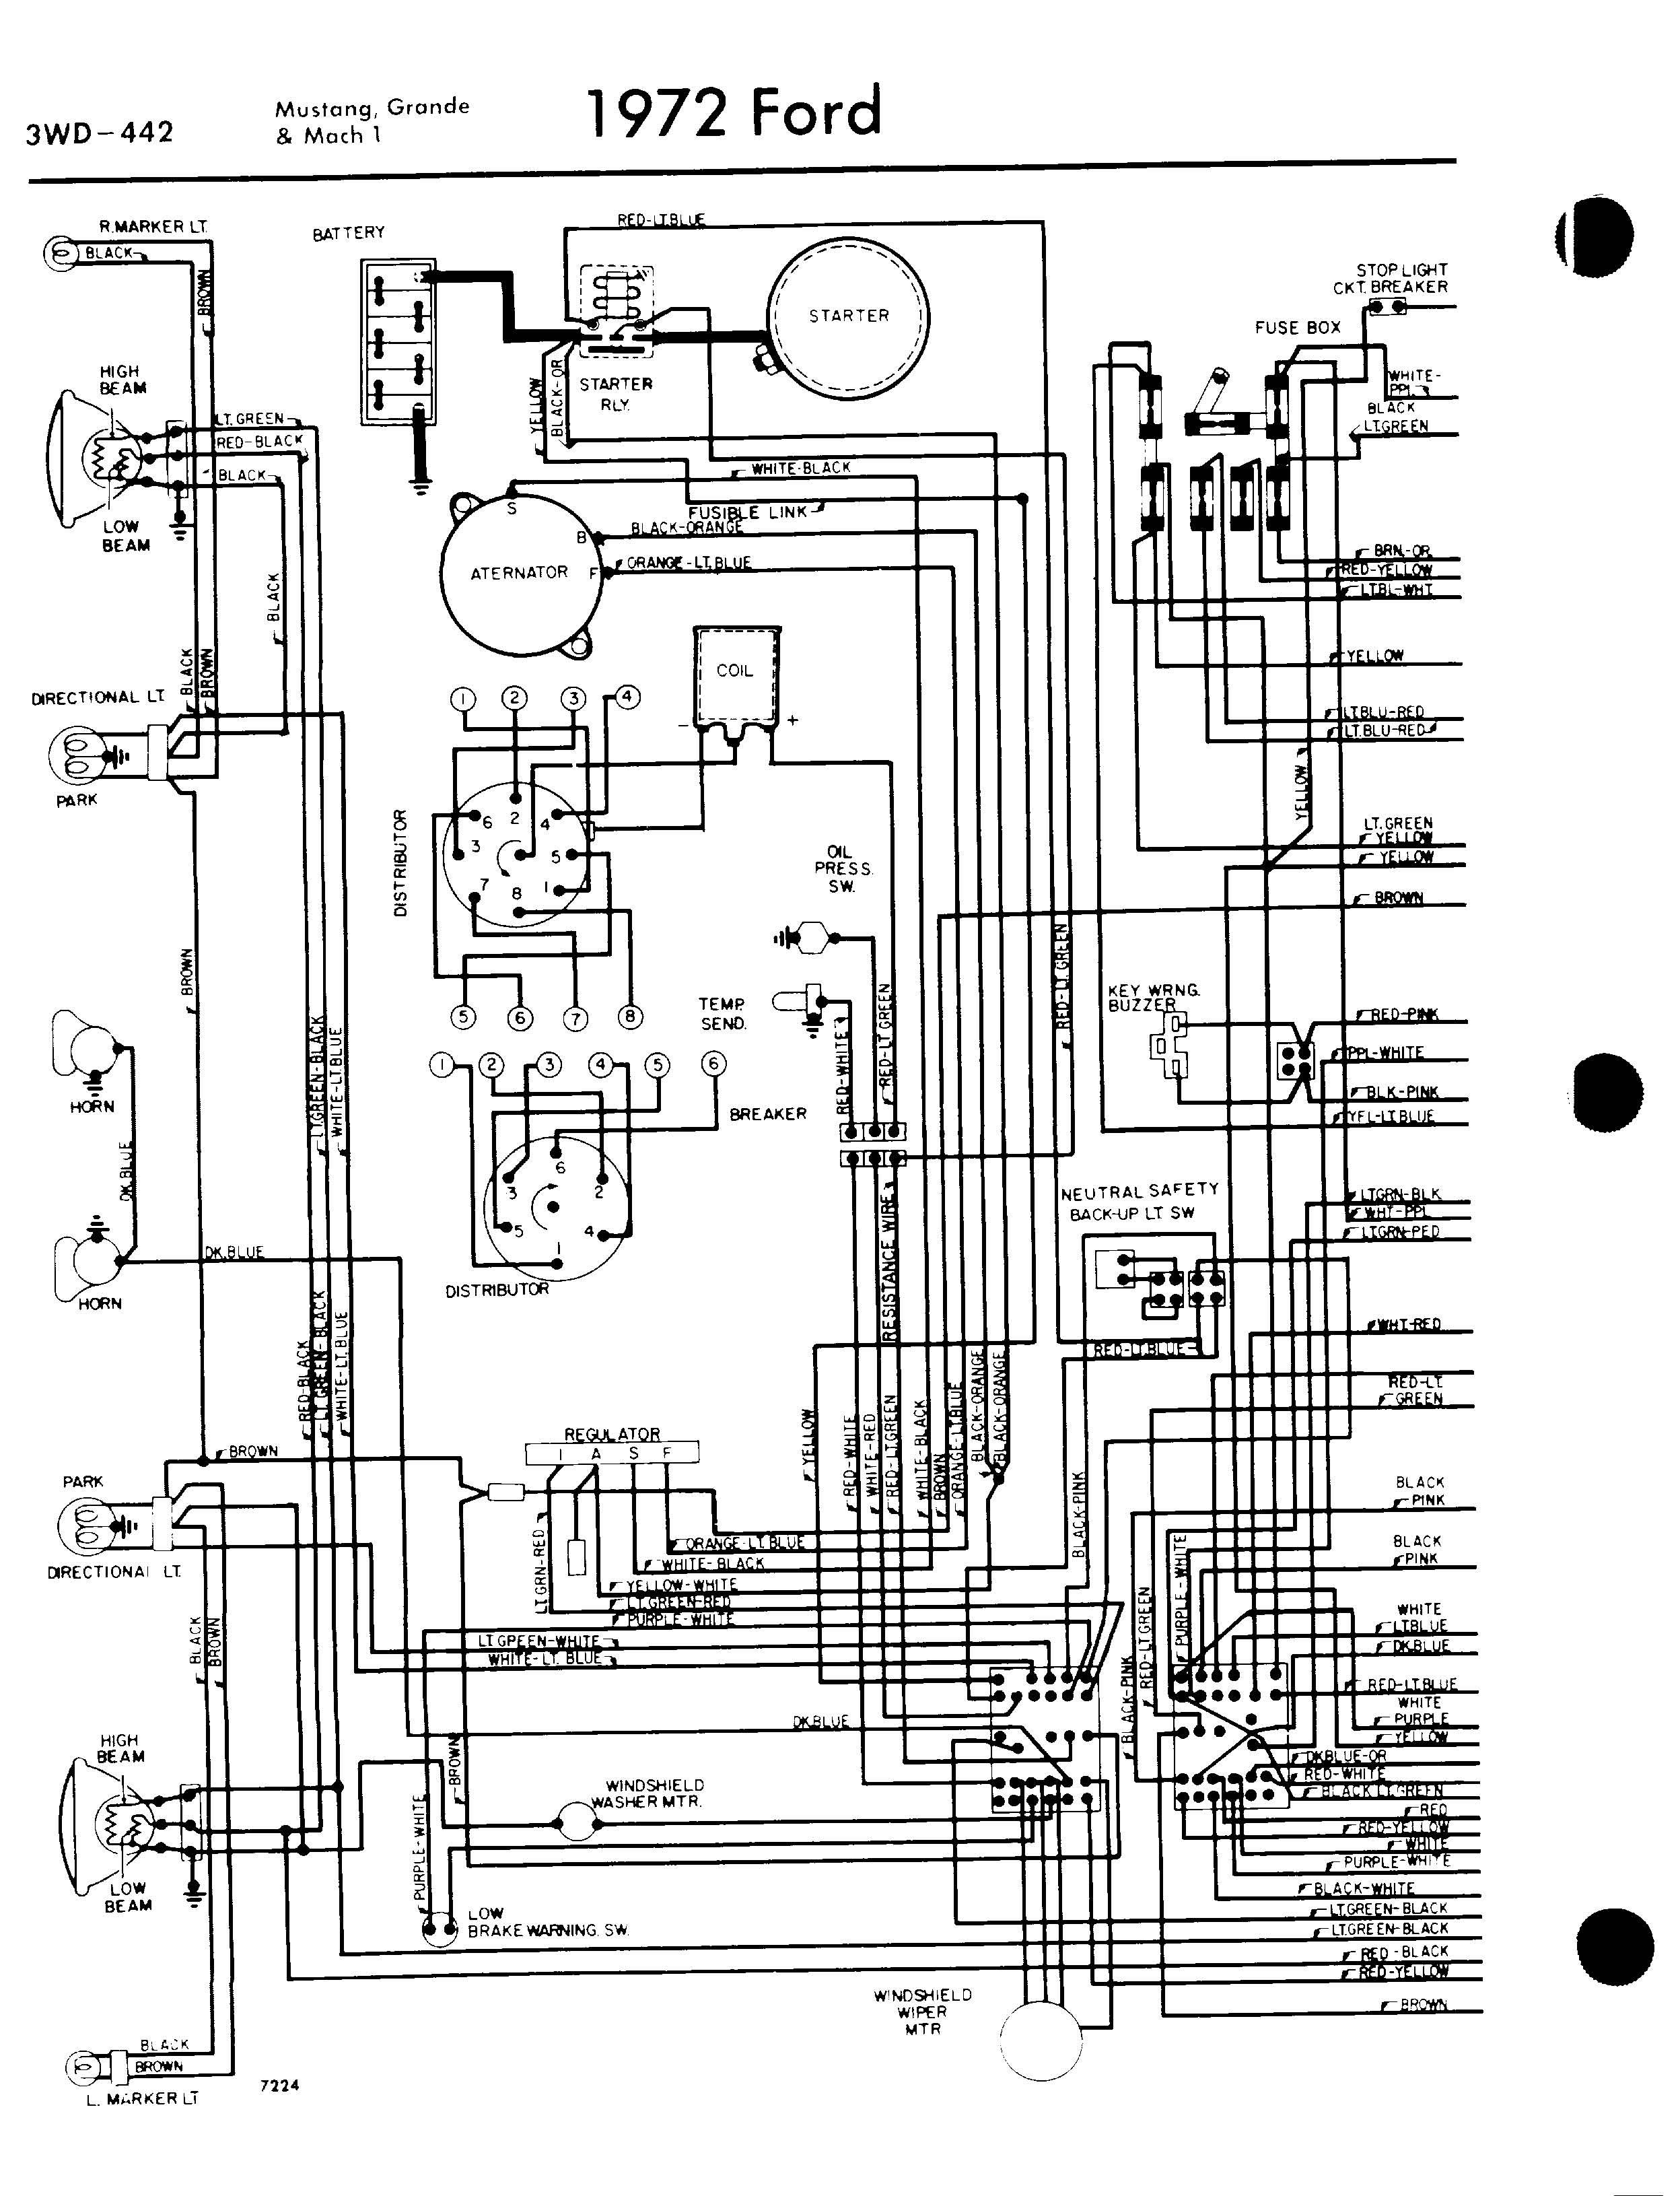 71af7a58e095e6a7716b32f1b23e8bd2 1973 chevy nova wiring diagram 1966 chevy wiper motor wiring 72 chevy alternator wiring diagram at n-0.co